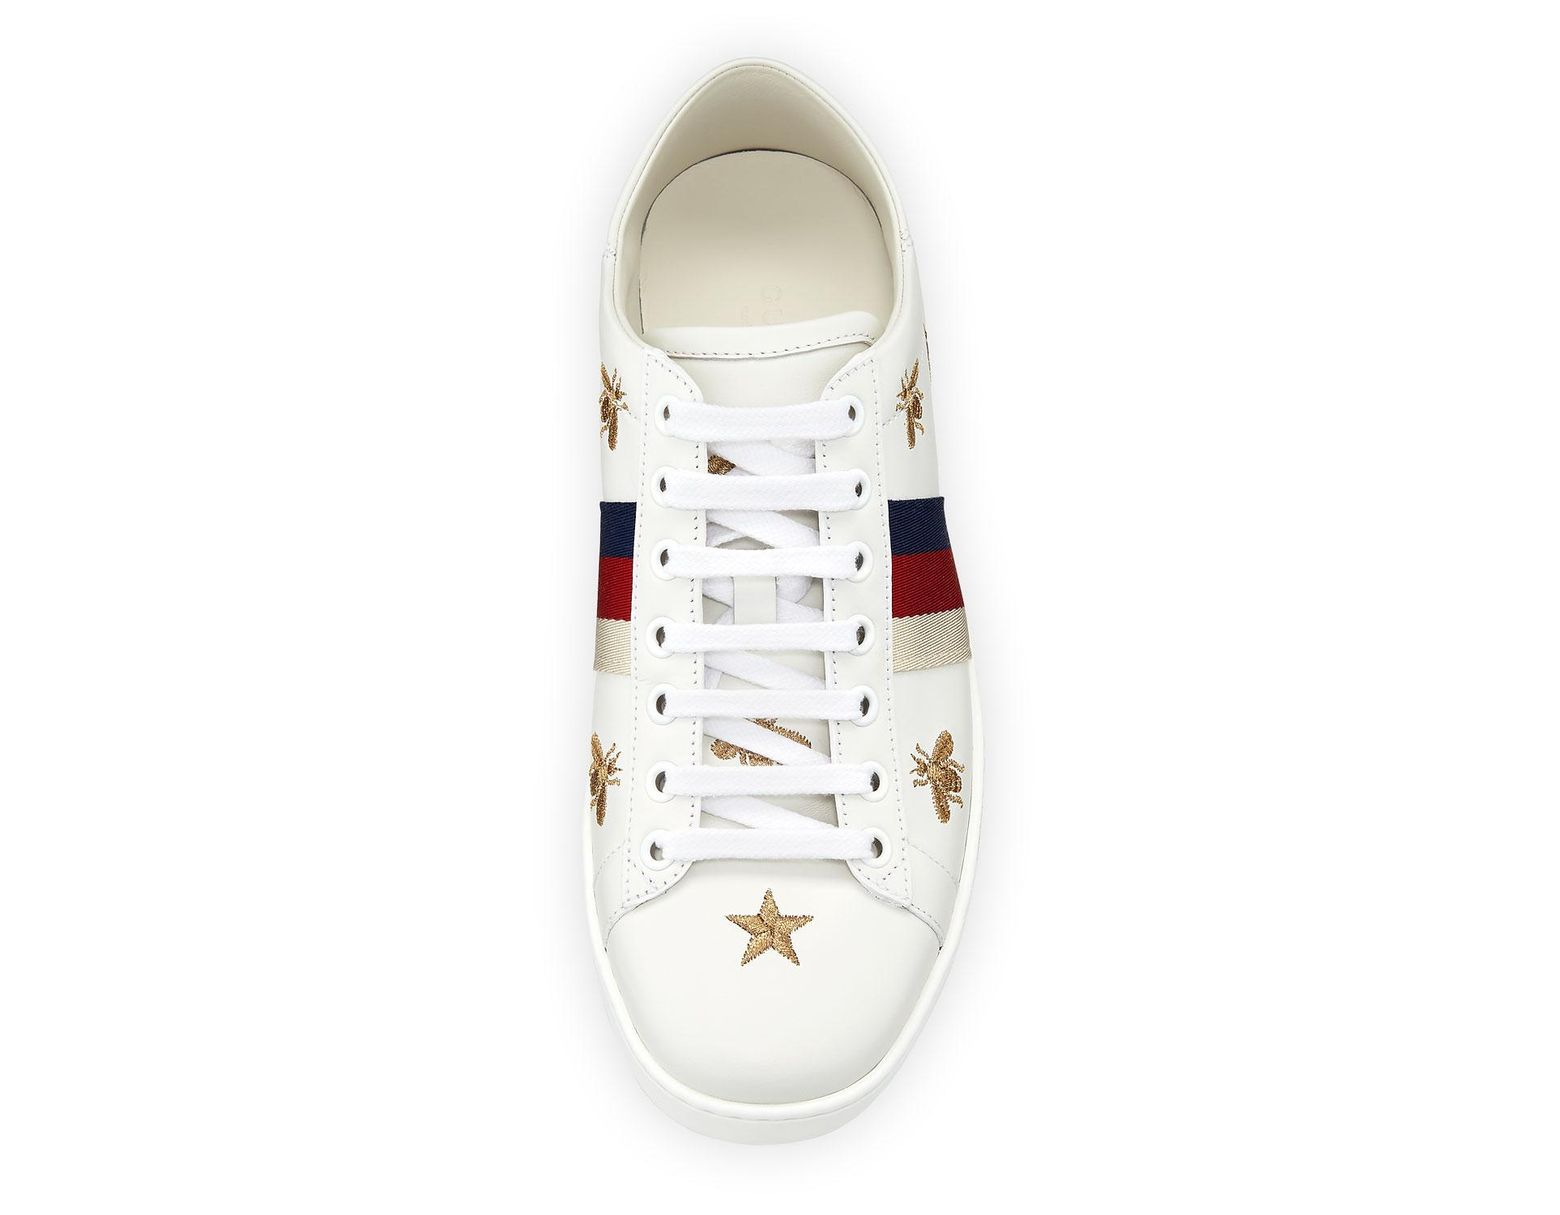 239b21044 Gucci Ace Star & Bee Fold-down Sneakers in White - Lyst